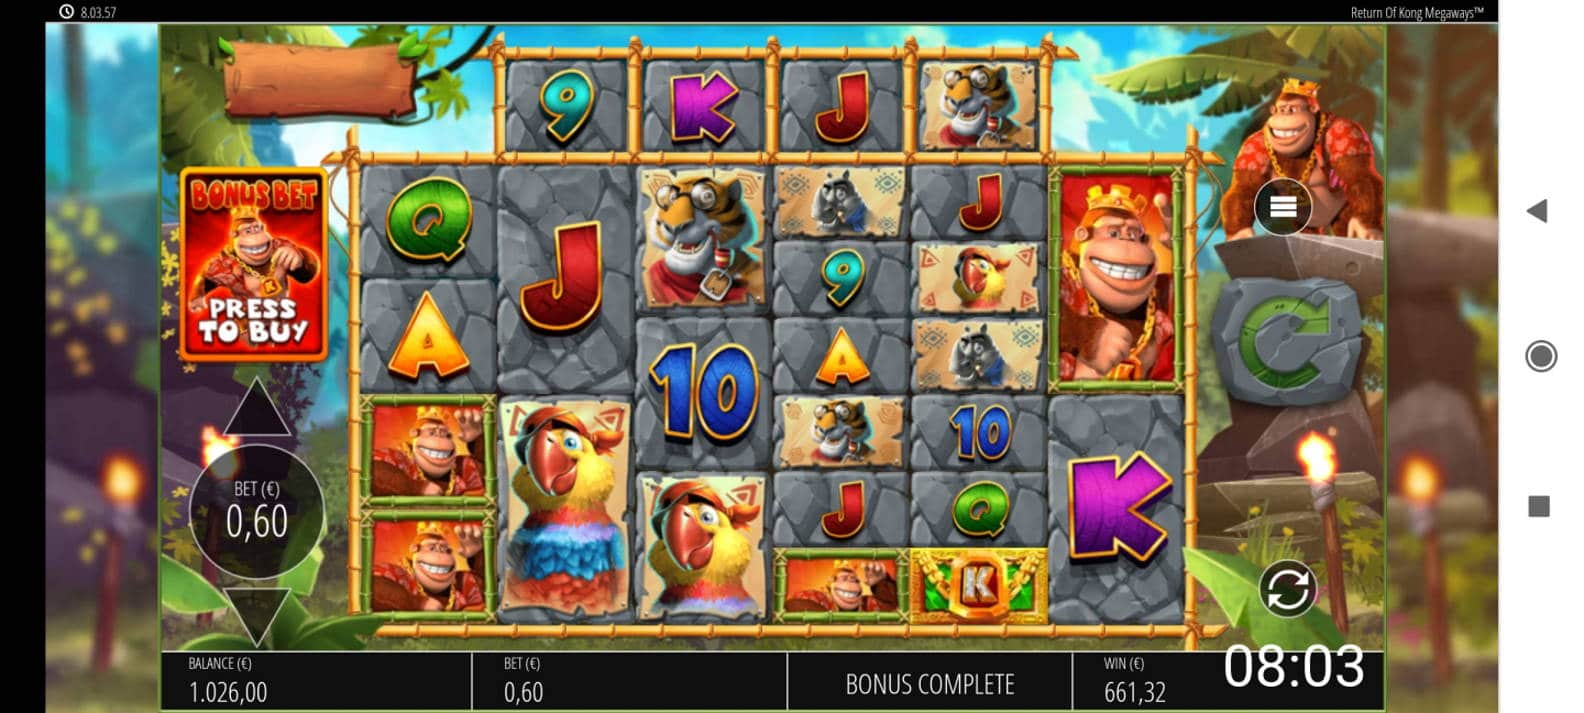 Return of Kong Megaways Casino win picture by Shorty 19.2.2021 661.32e 1102X